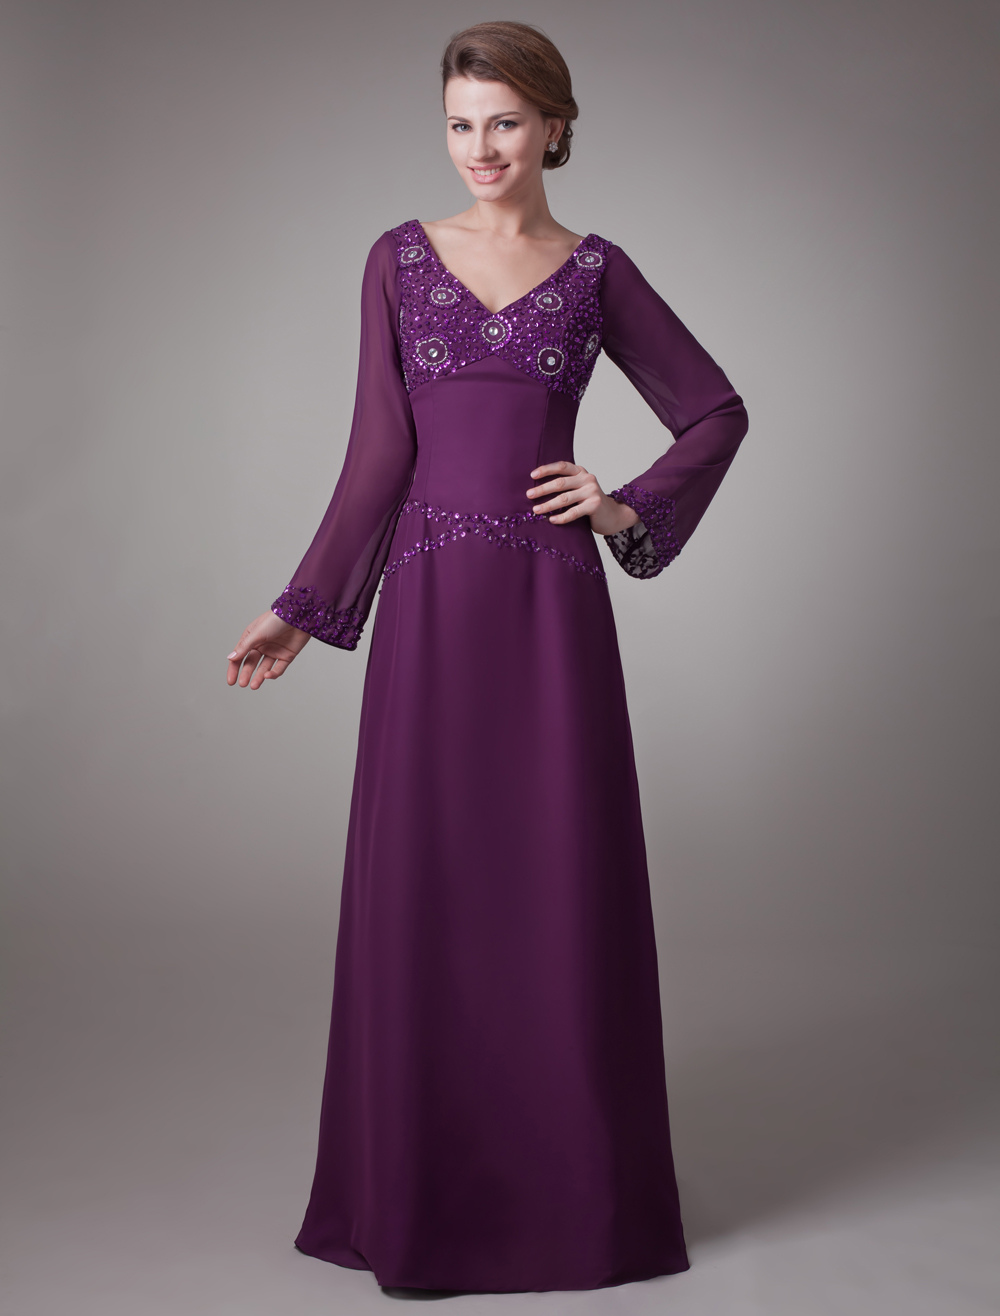 Grape A-line Charming Mother of the Bride Dress with V-Neck Sequin Long Sleeves (Wedding) photo